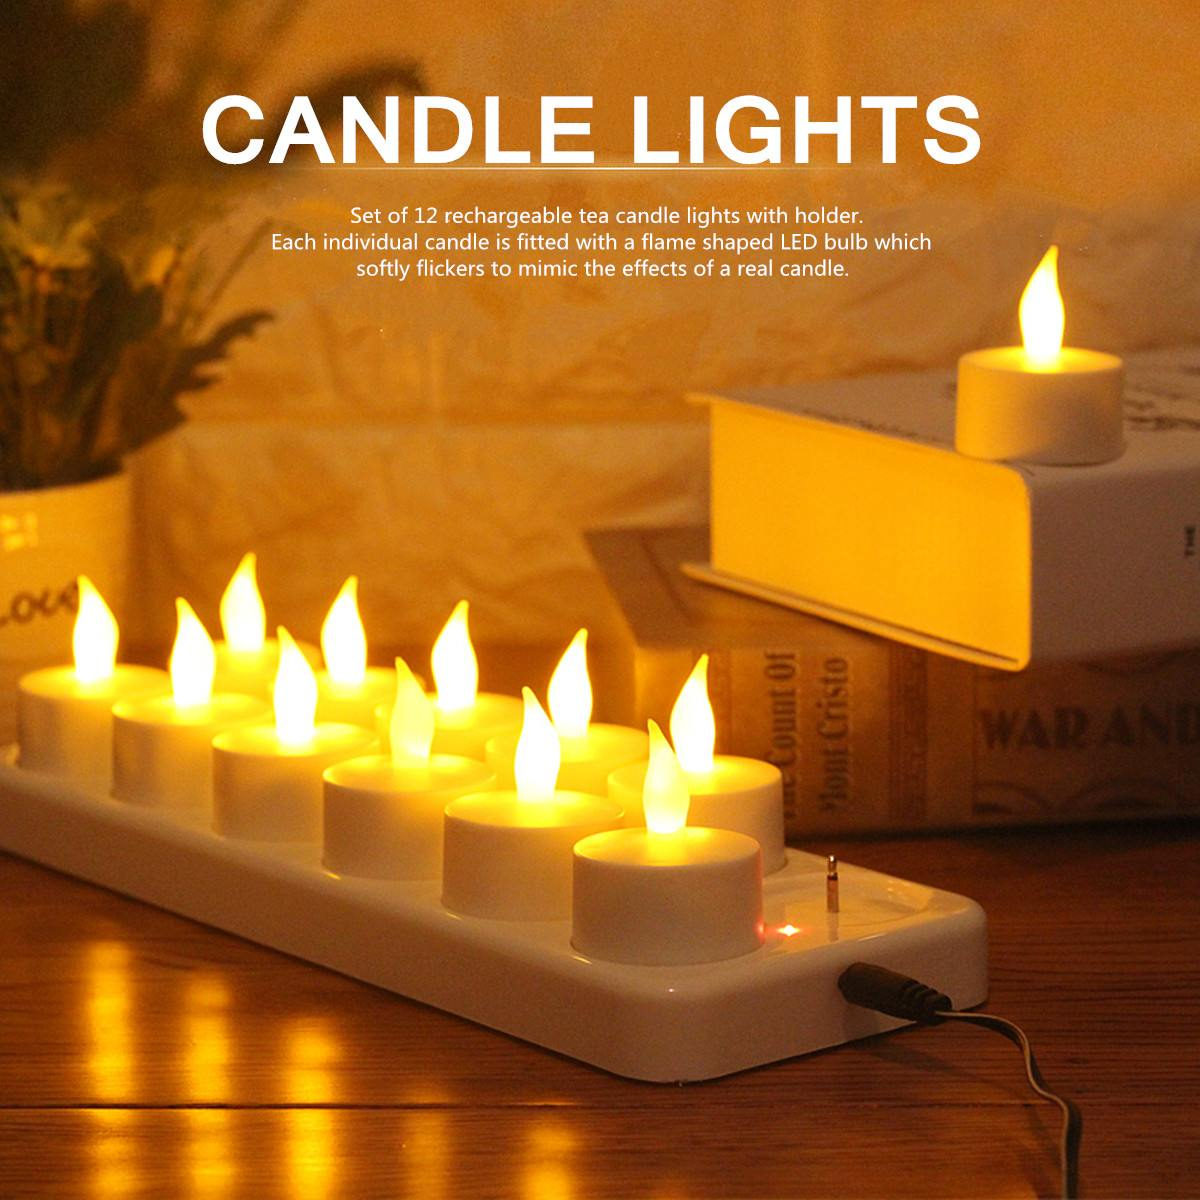 Flickering Led Tea Lights Candles 12 Rechargeable With